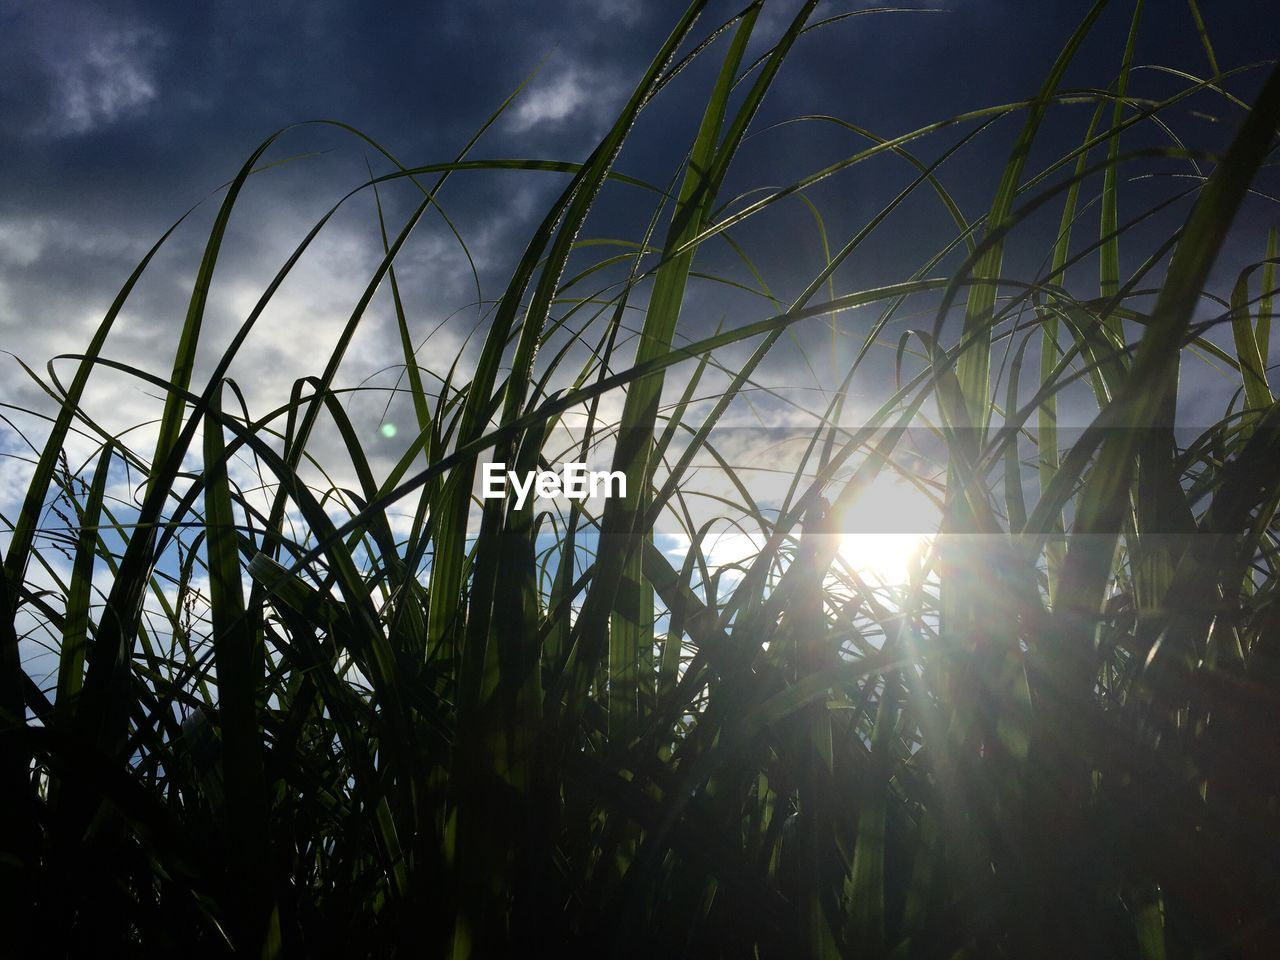 growth, nature, plant, beauty in nature, sunlight, field, outdoors, no people, sun, day, tranquility, sky, low angle view, close-up, freshness